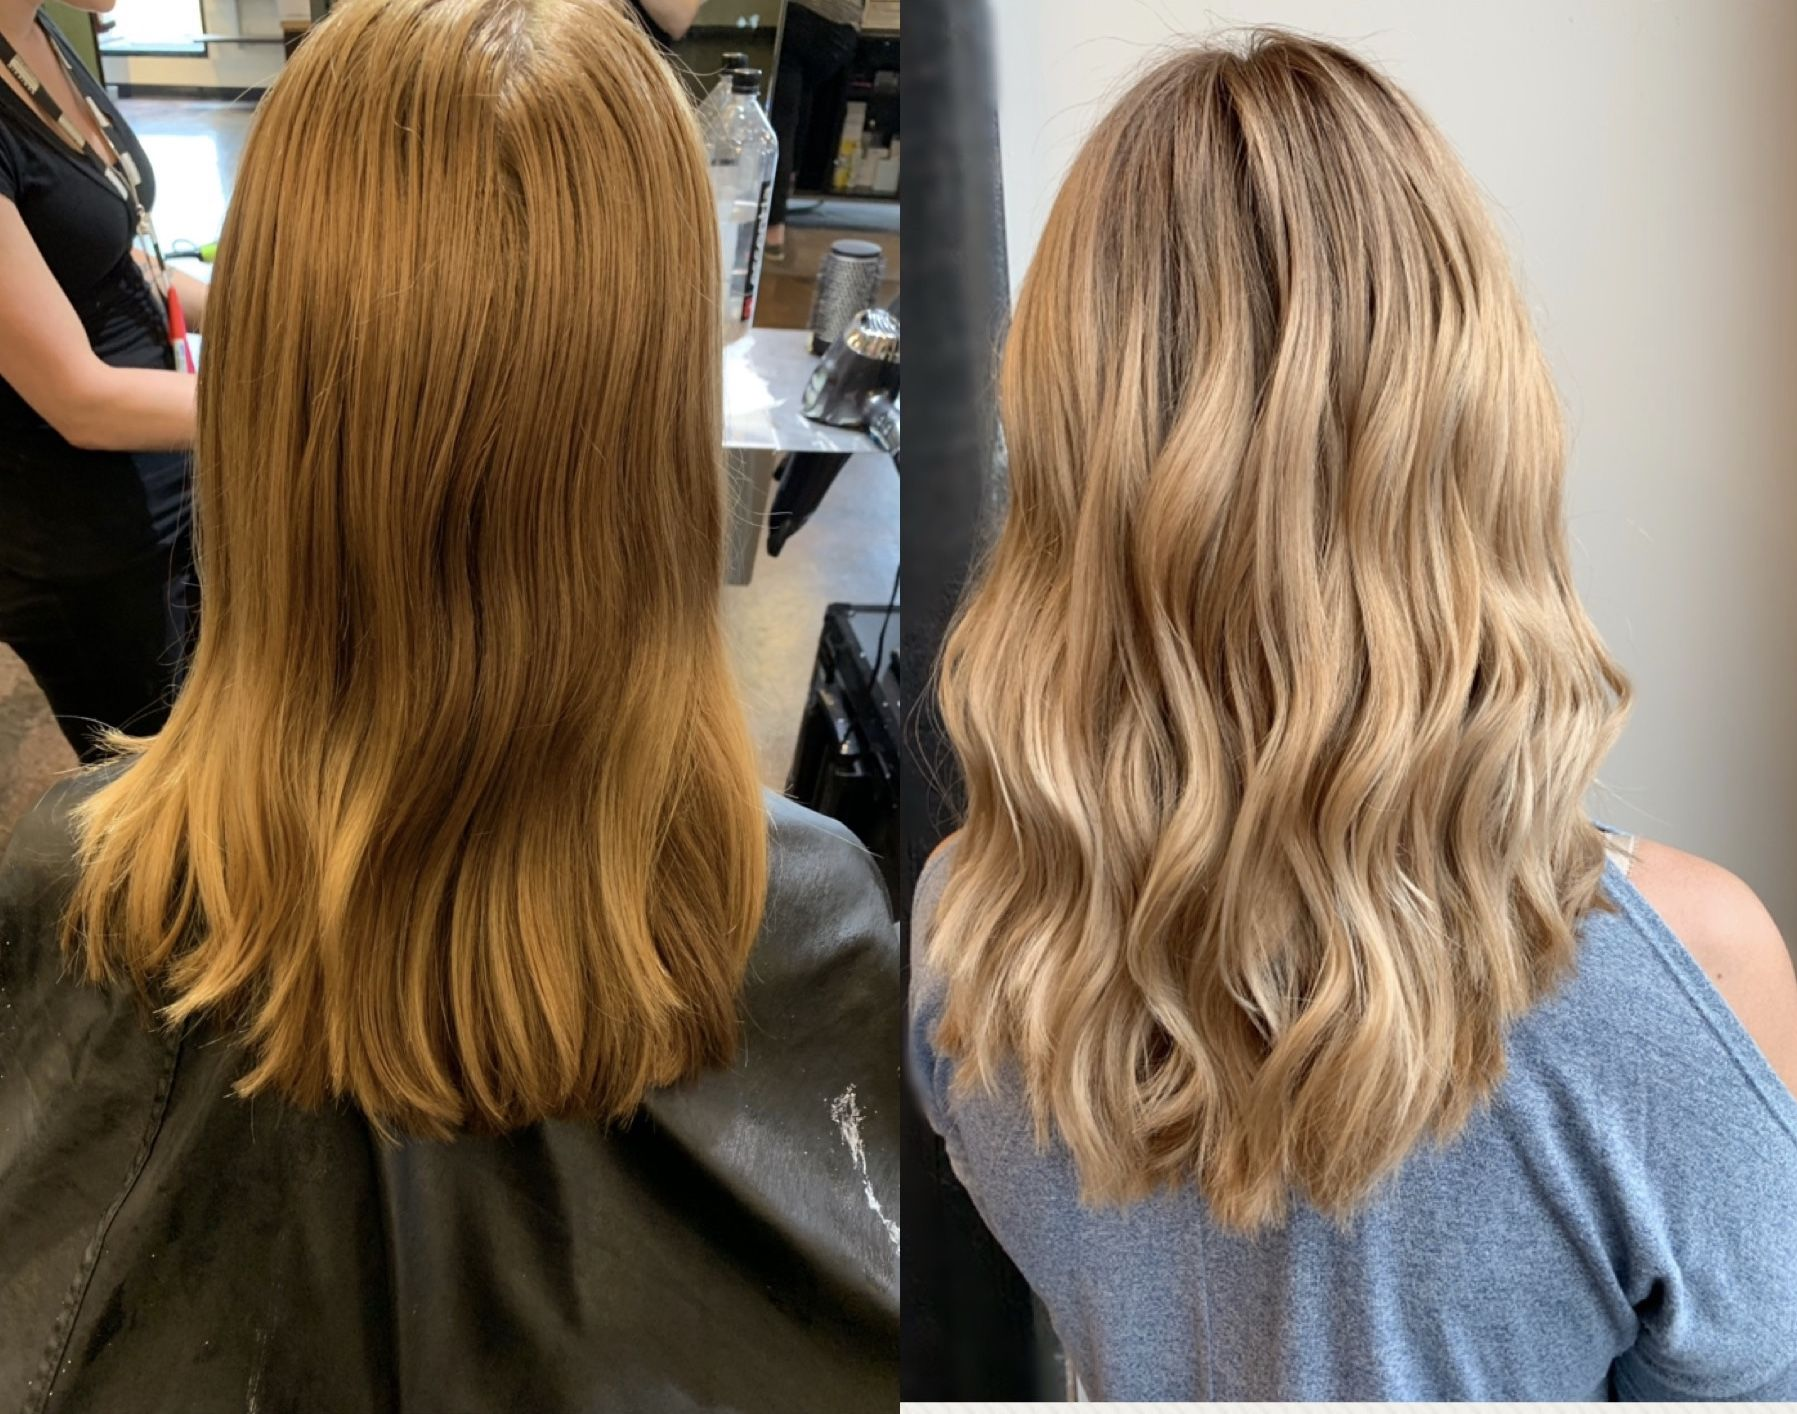 Before And After Box Dye To Beautiful Blonde Hair With Images